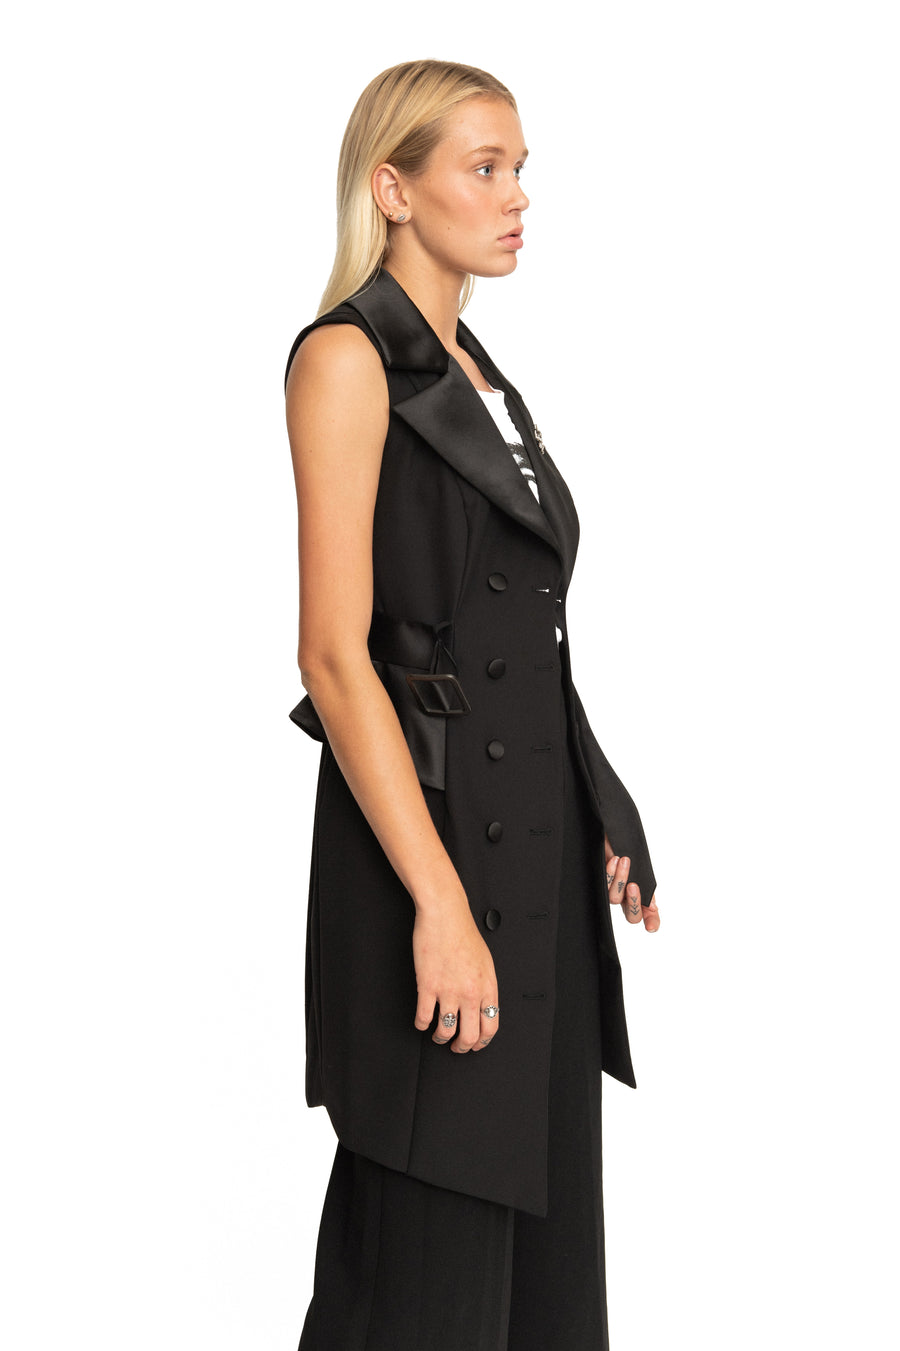 LODOVICA BLAZER DRESS/ VEST